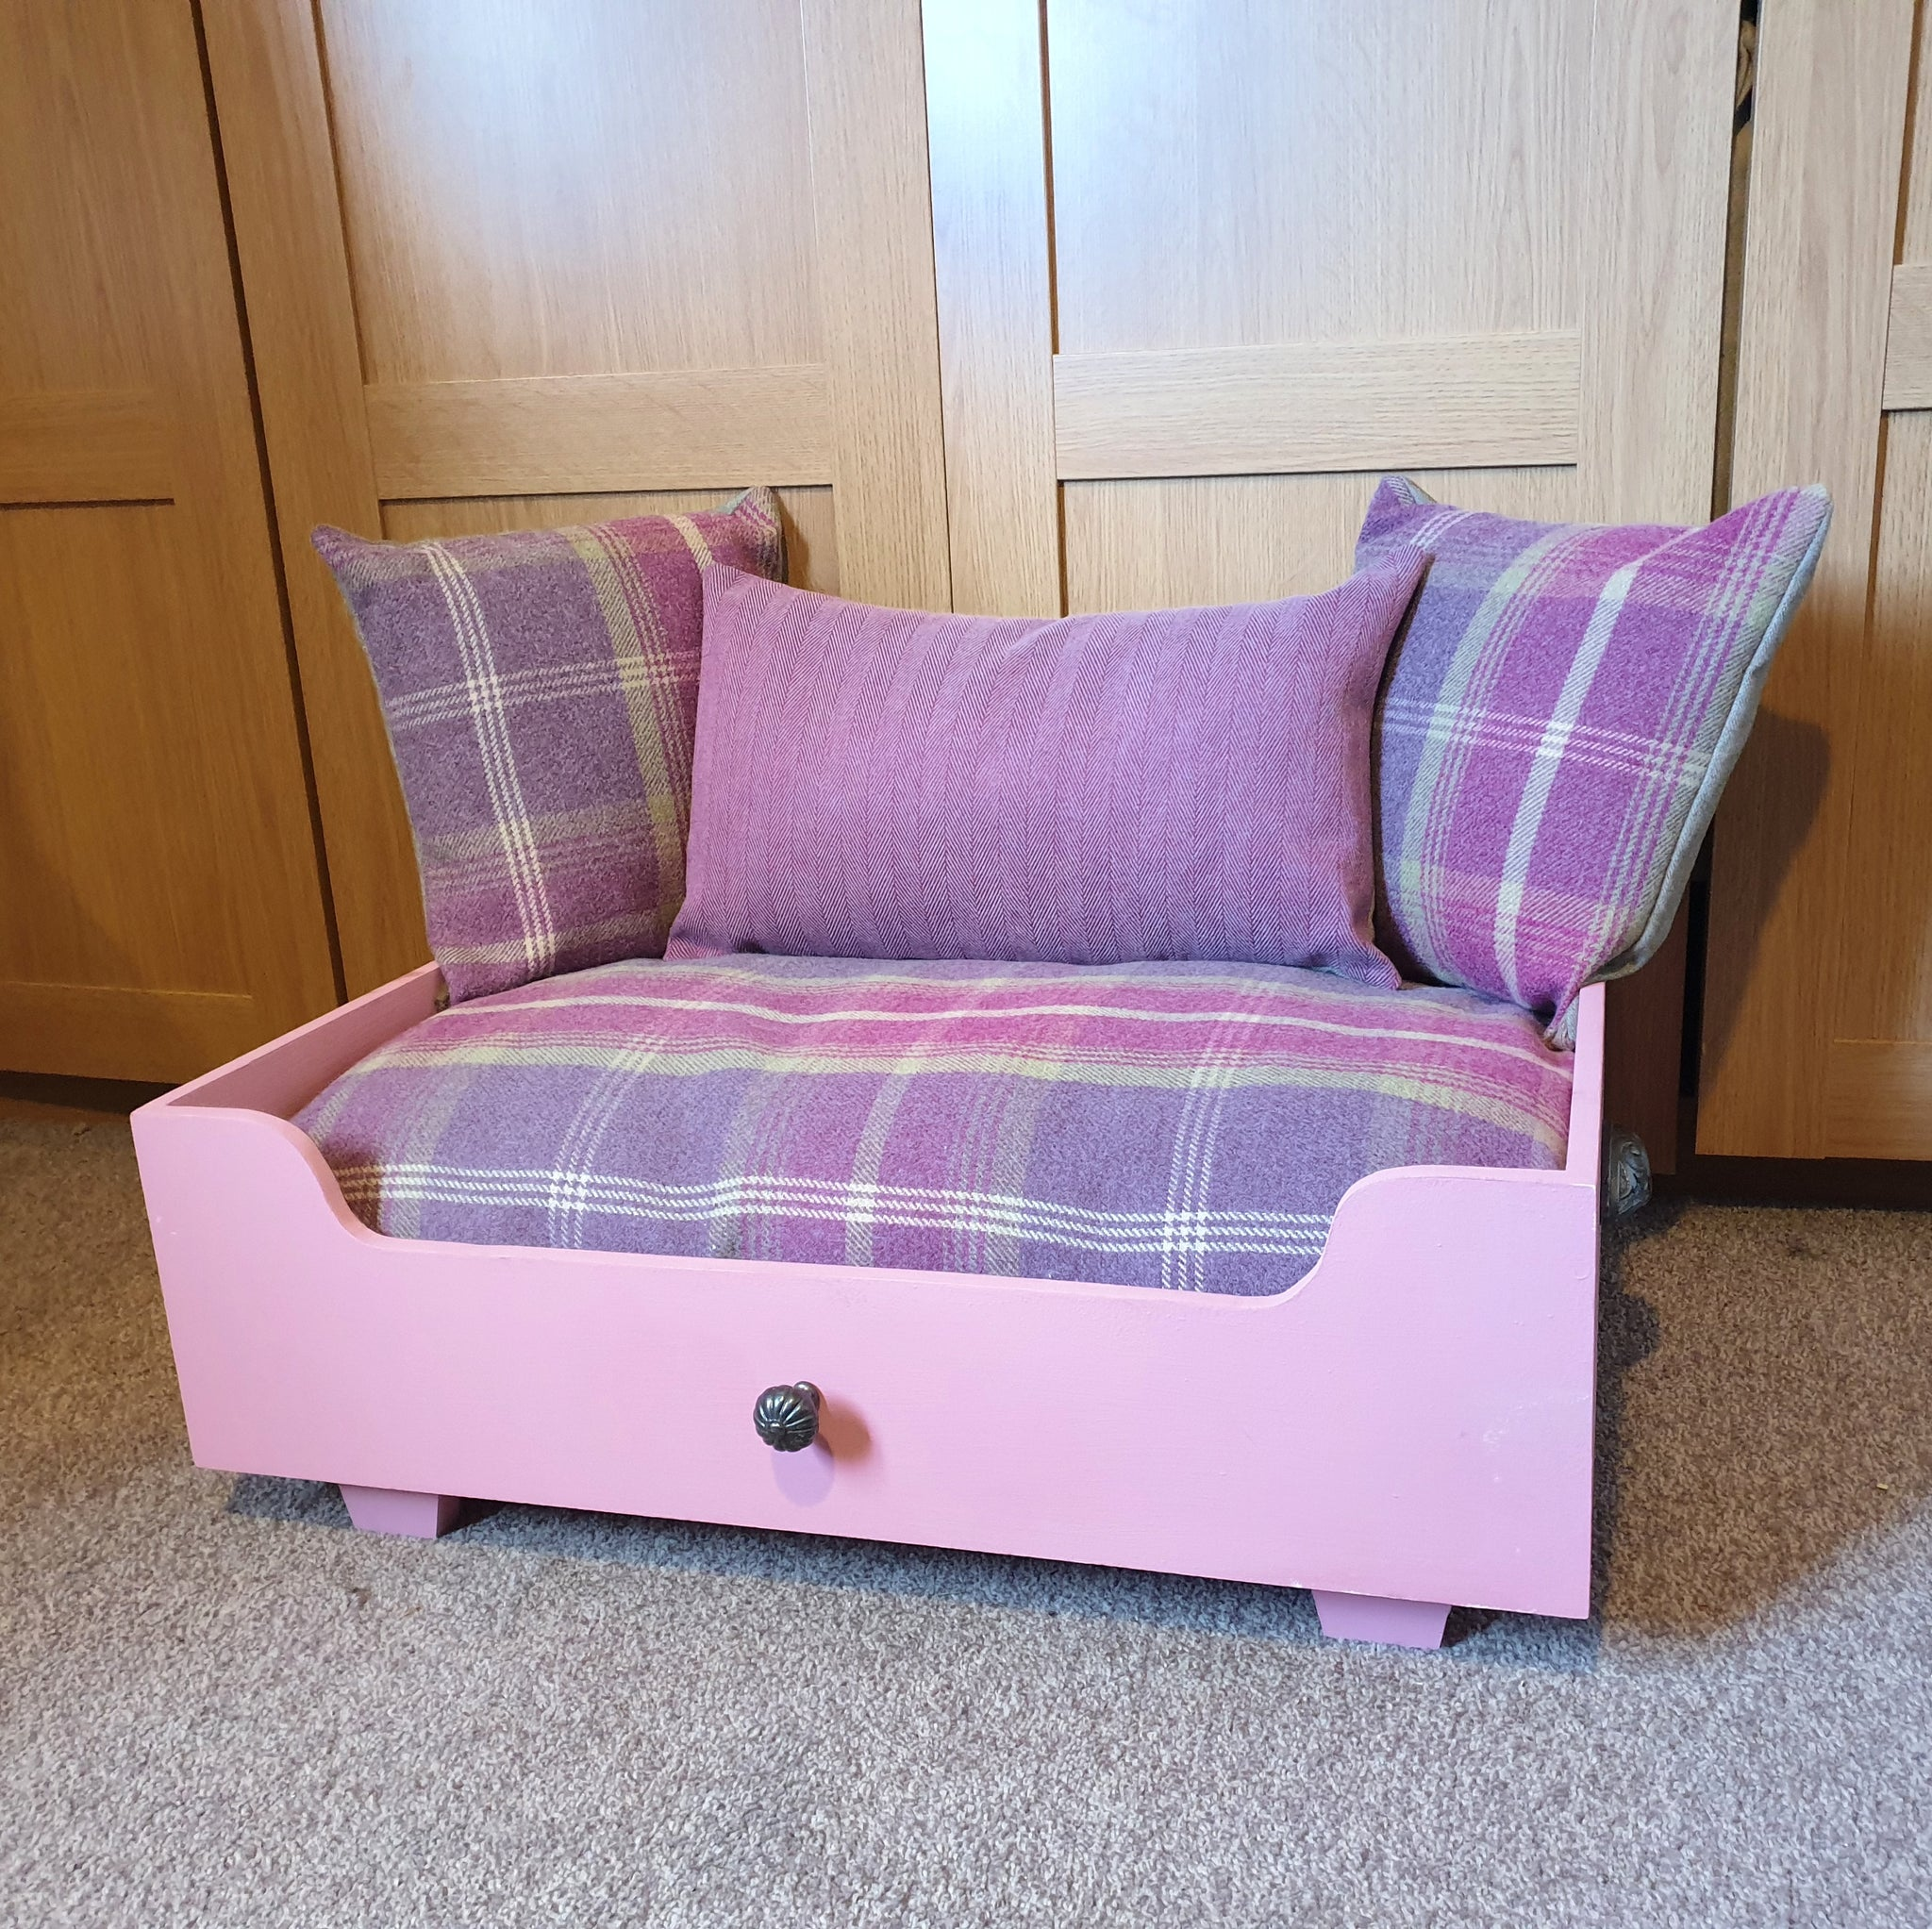 Handmade Dog Bed - Pink Tartan and herringbone